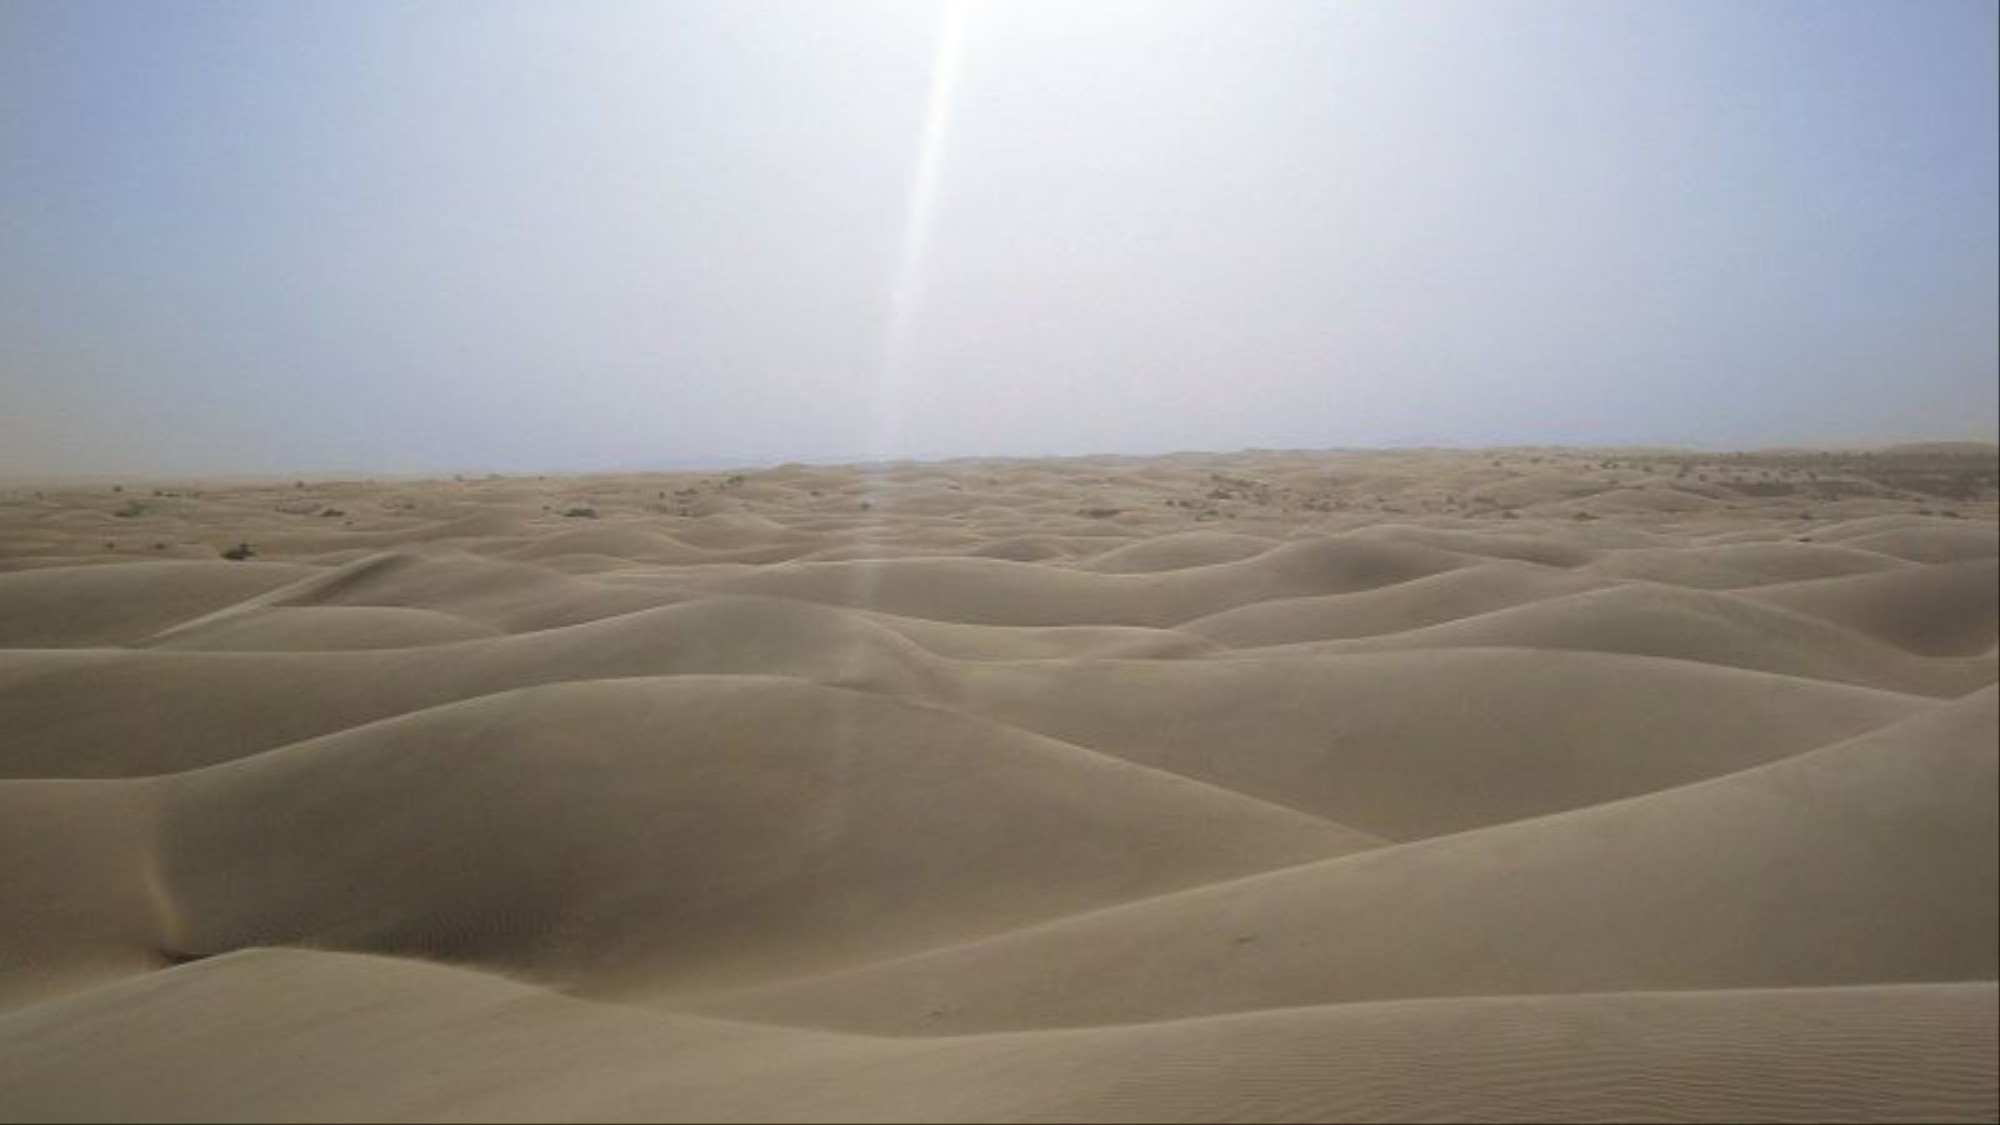 Wind and solar power stations in the Sahara will help improve the climatic conditions of the desert